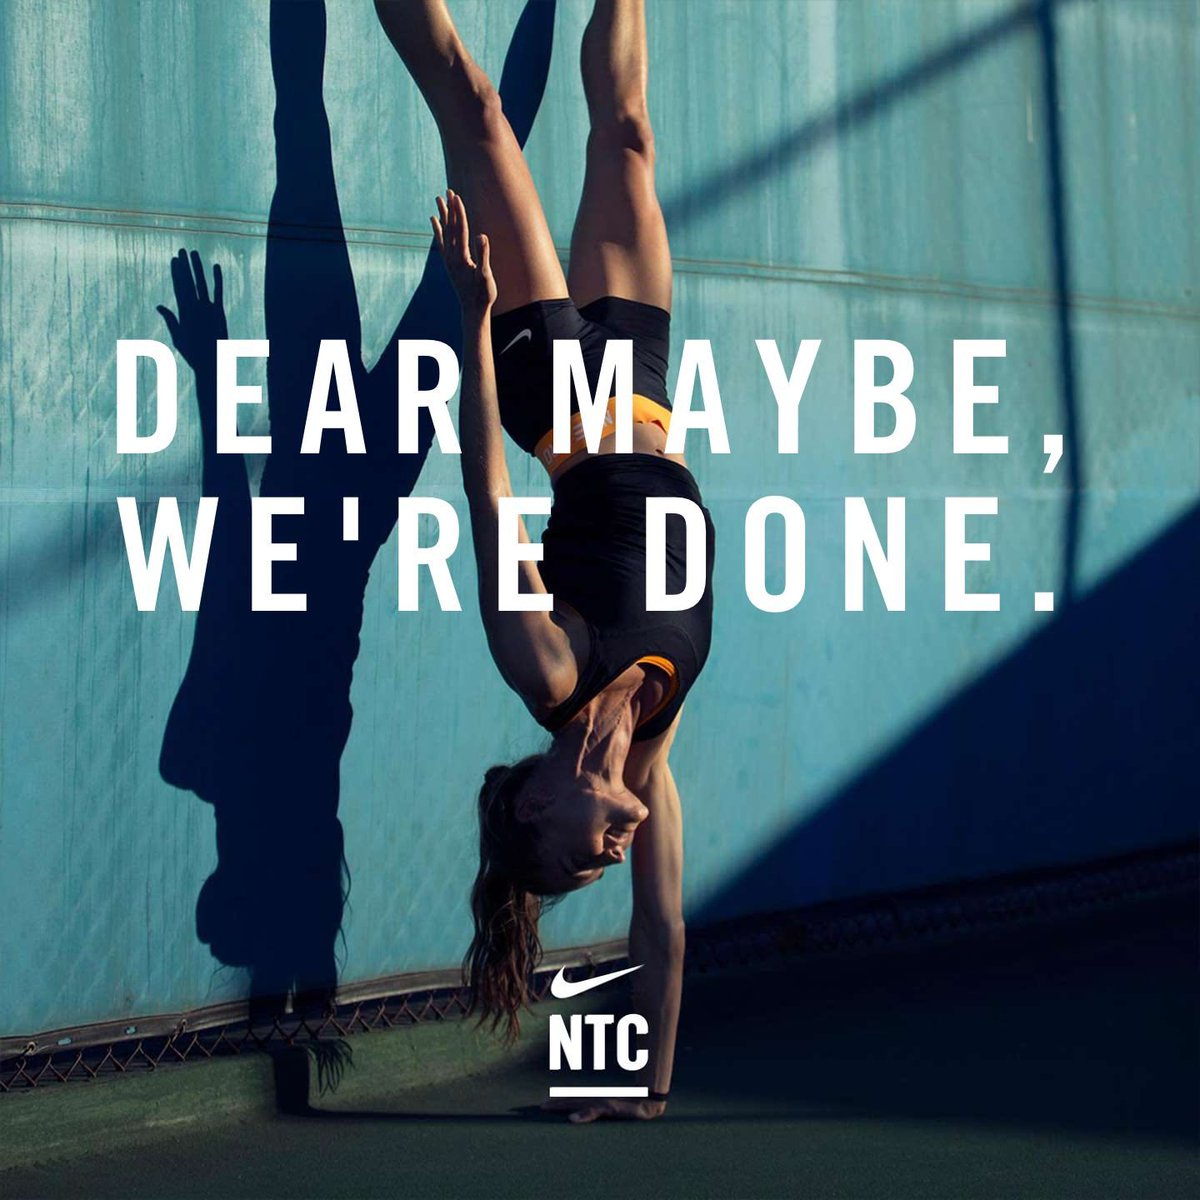 Evening #NTC completed. Just in case you didn't know, Nike Training Club premium is now free for all Nike members. Get your workouts for FREE.  pic.twitter.com/ZN9g9LTmTn